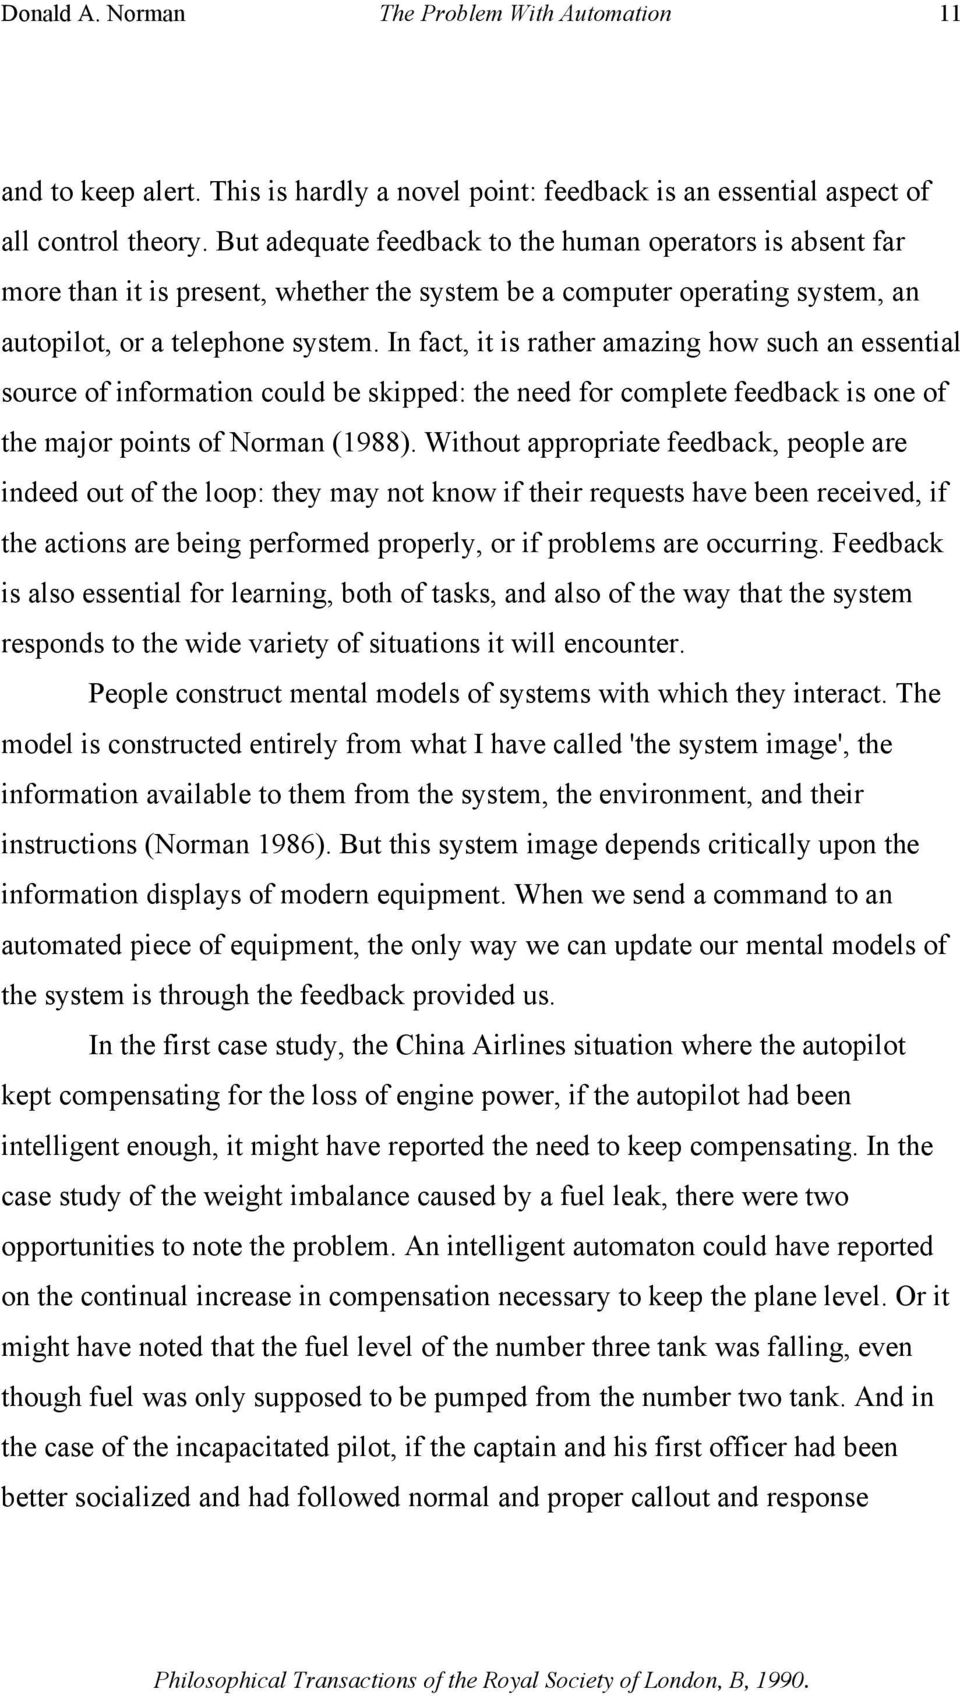 In fact, it is rather amazing how such an essential source of information could be skipped: the need for complete feedback is one of the major points of Norman (1988).